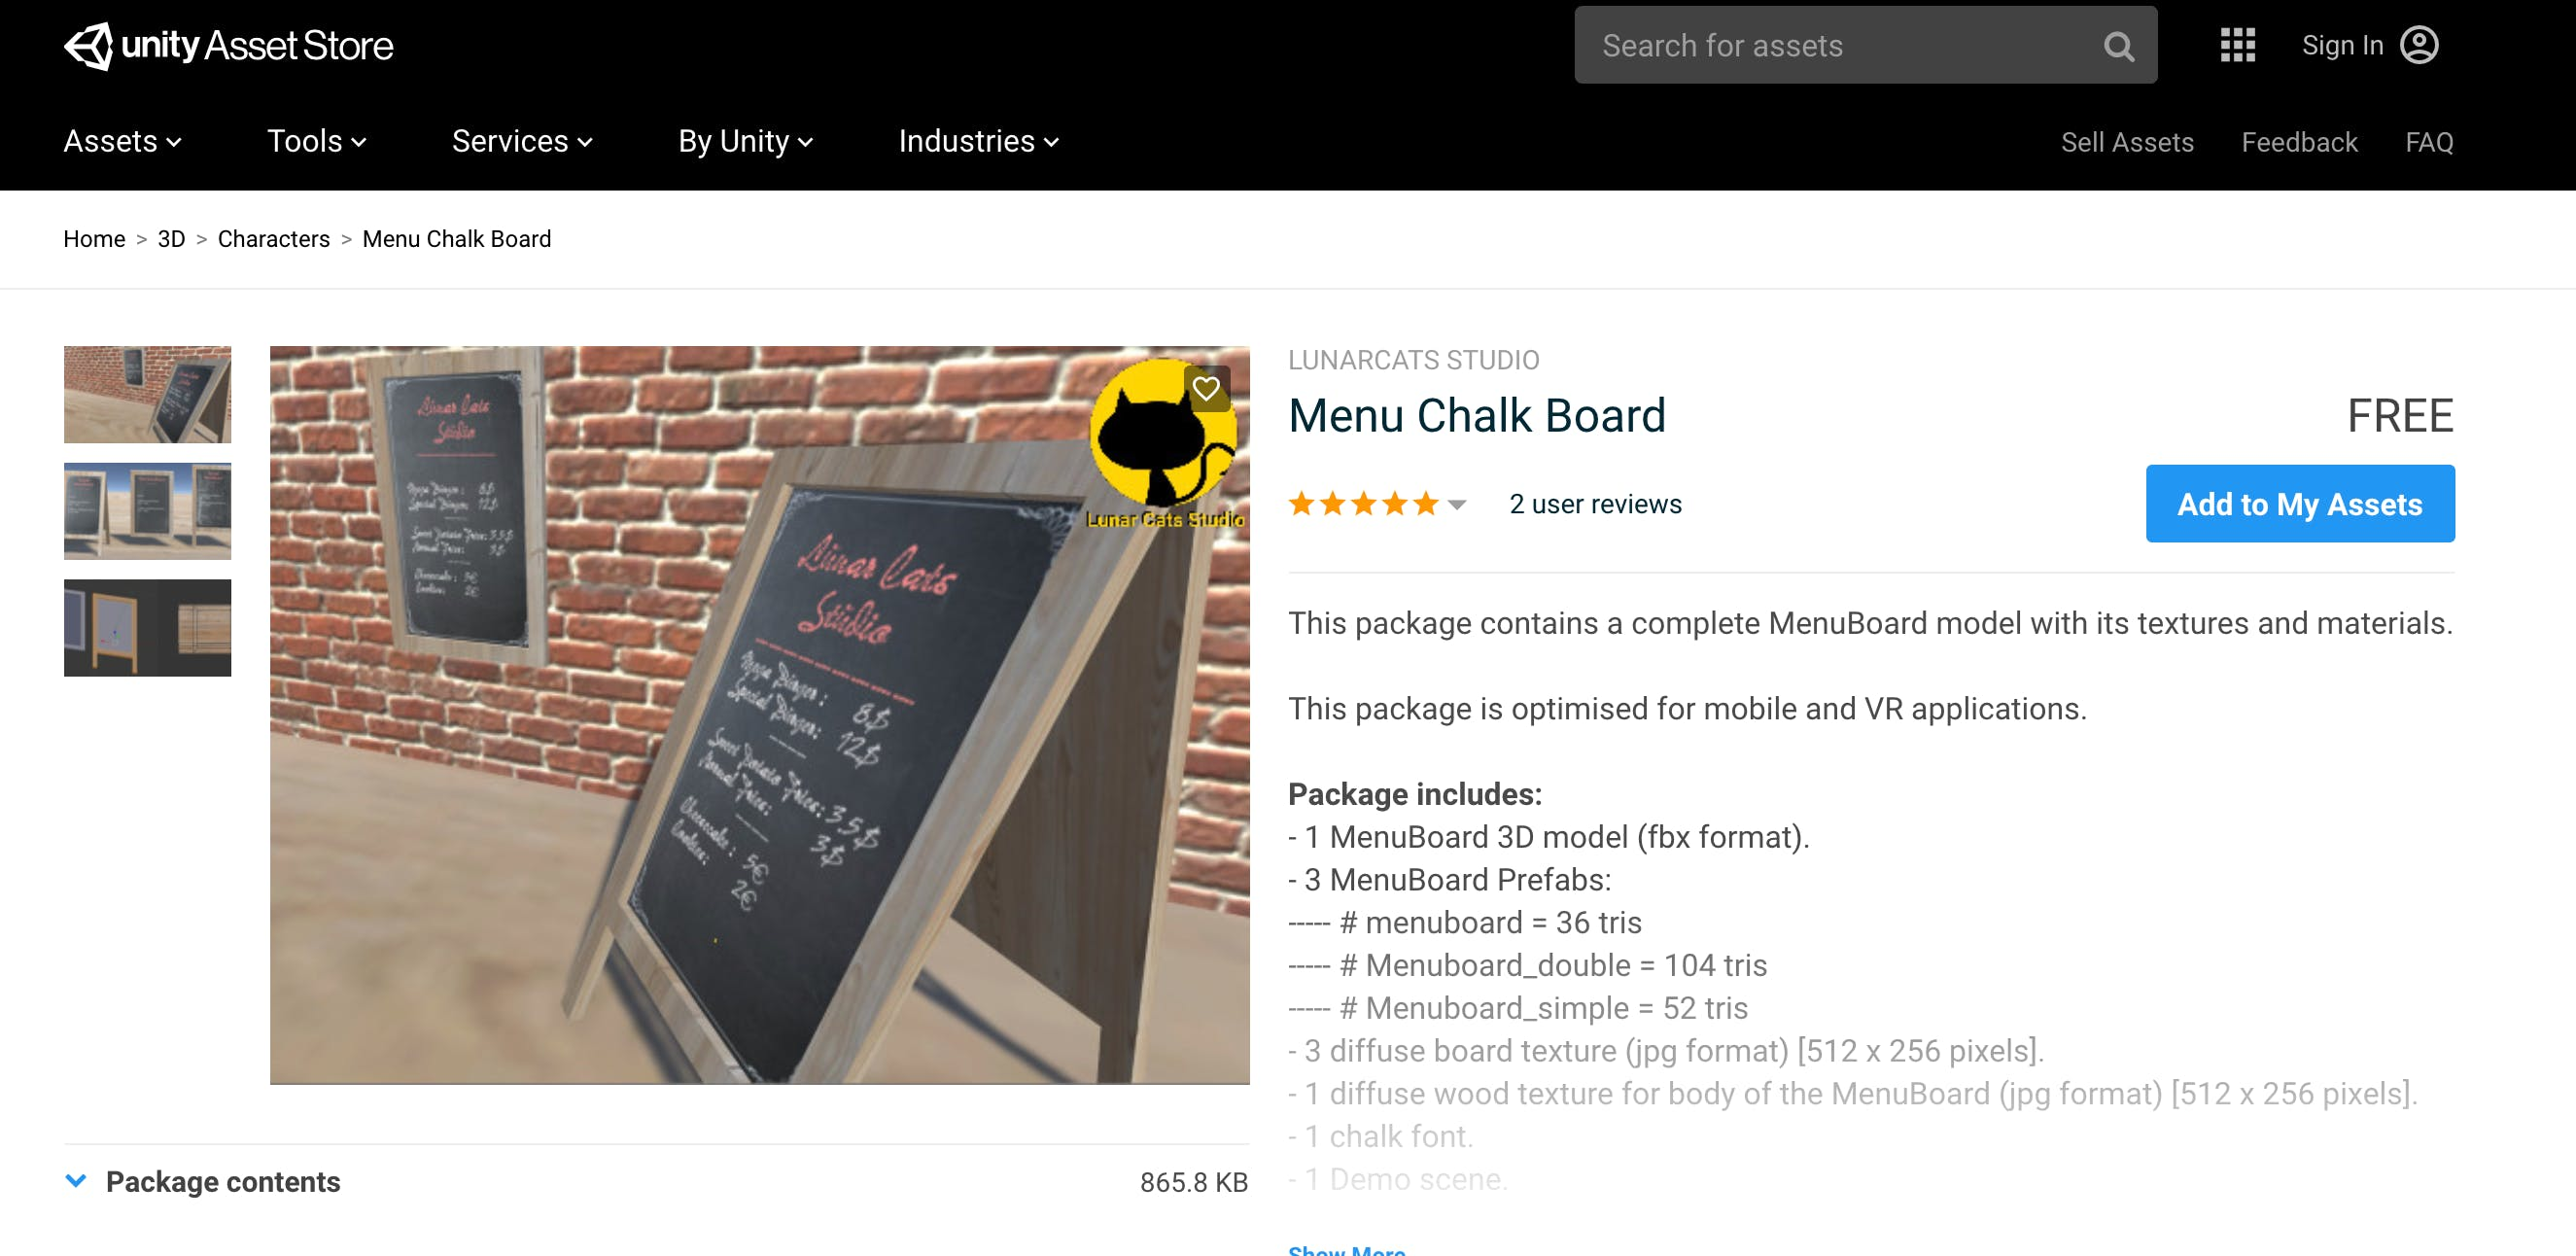 screenshot of the Menu Chalk Board asset found on the Unity Asset Store